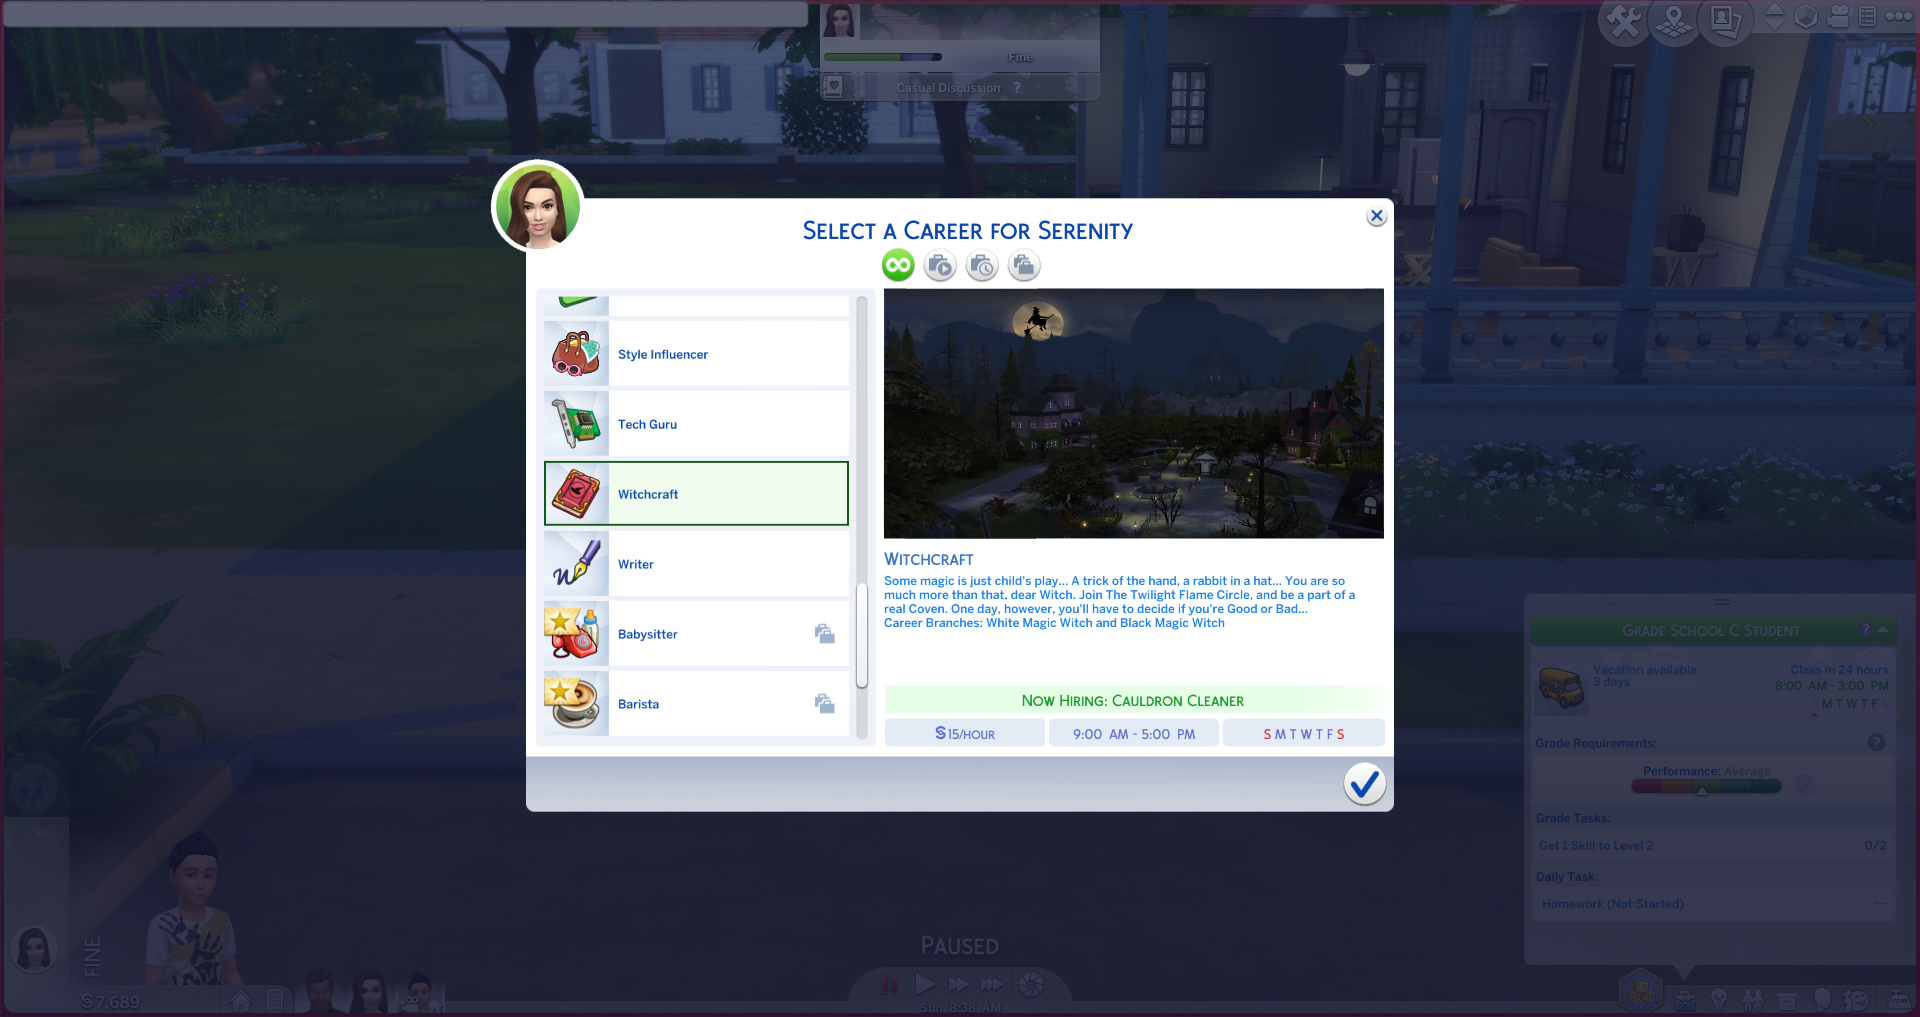 The Sims 4 career screen showing the witchcraft career.